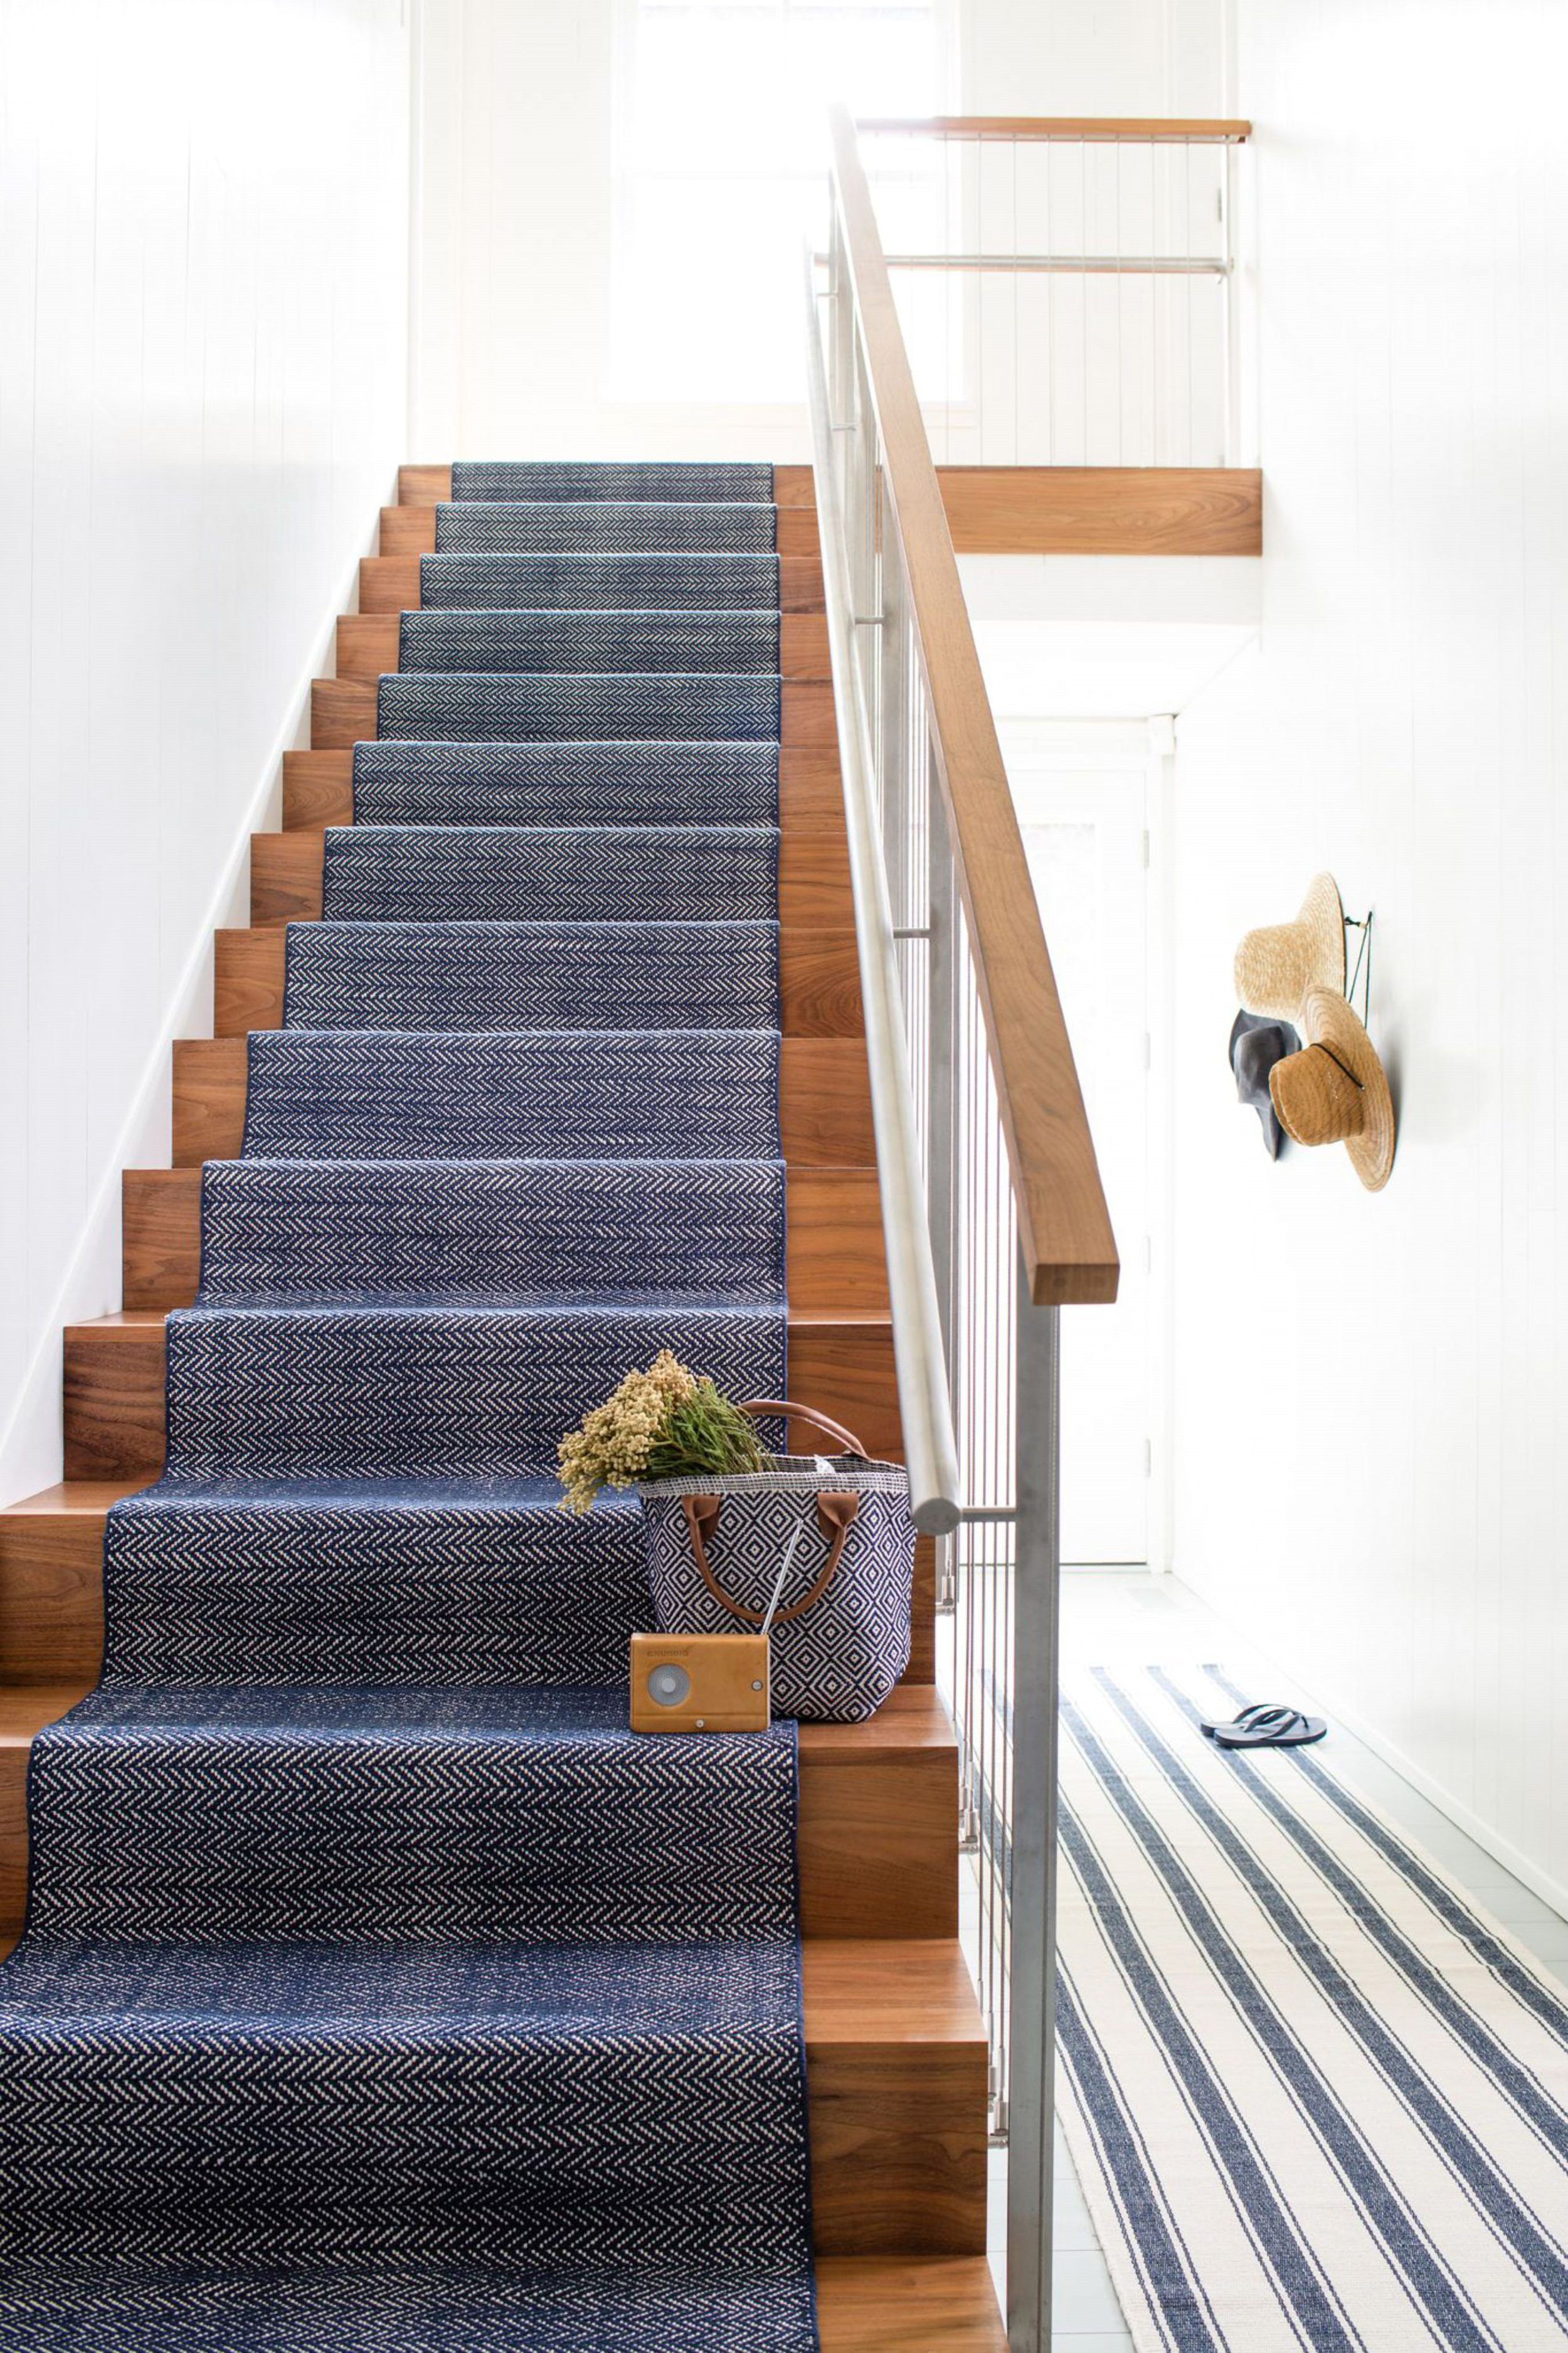 Pictures Of Staircases For Interior Design Inspiration Studio Mcgee Home House